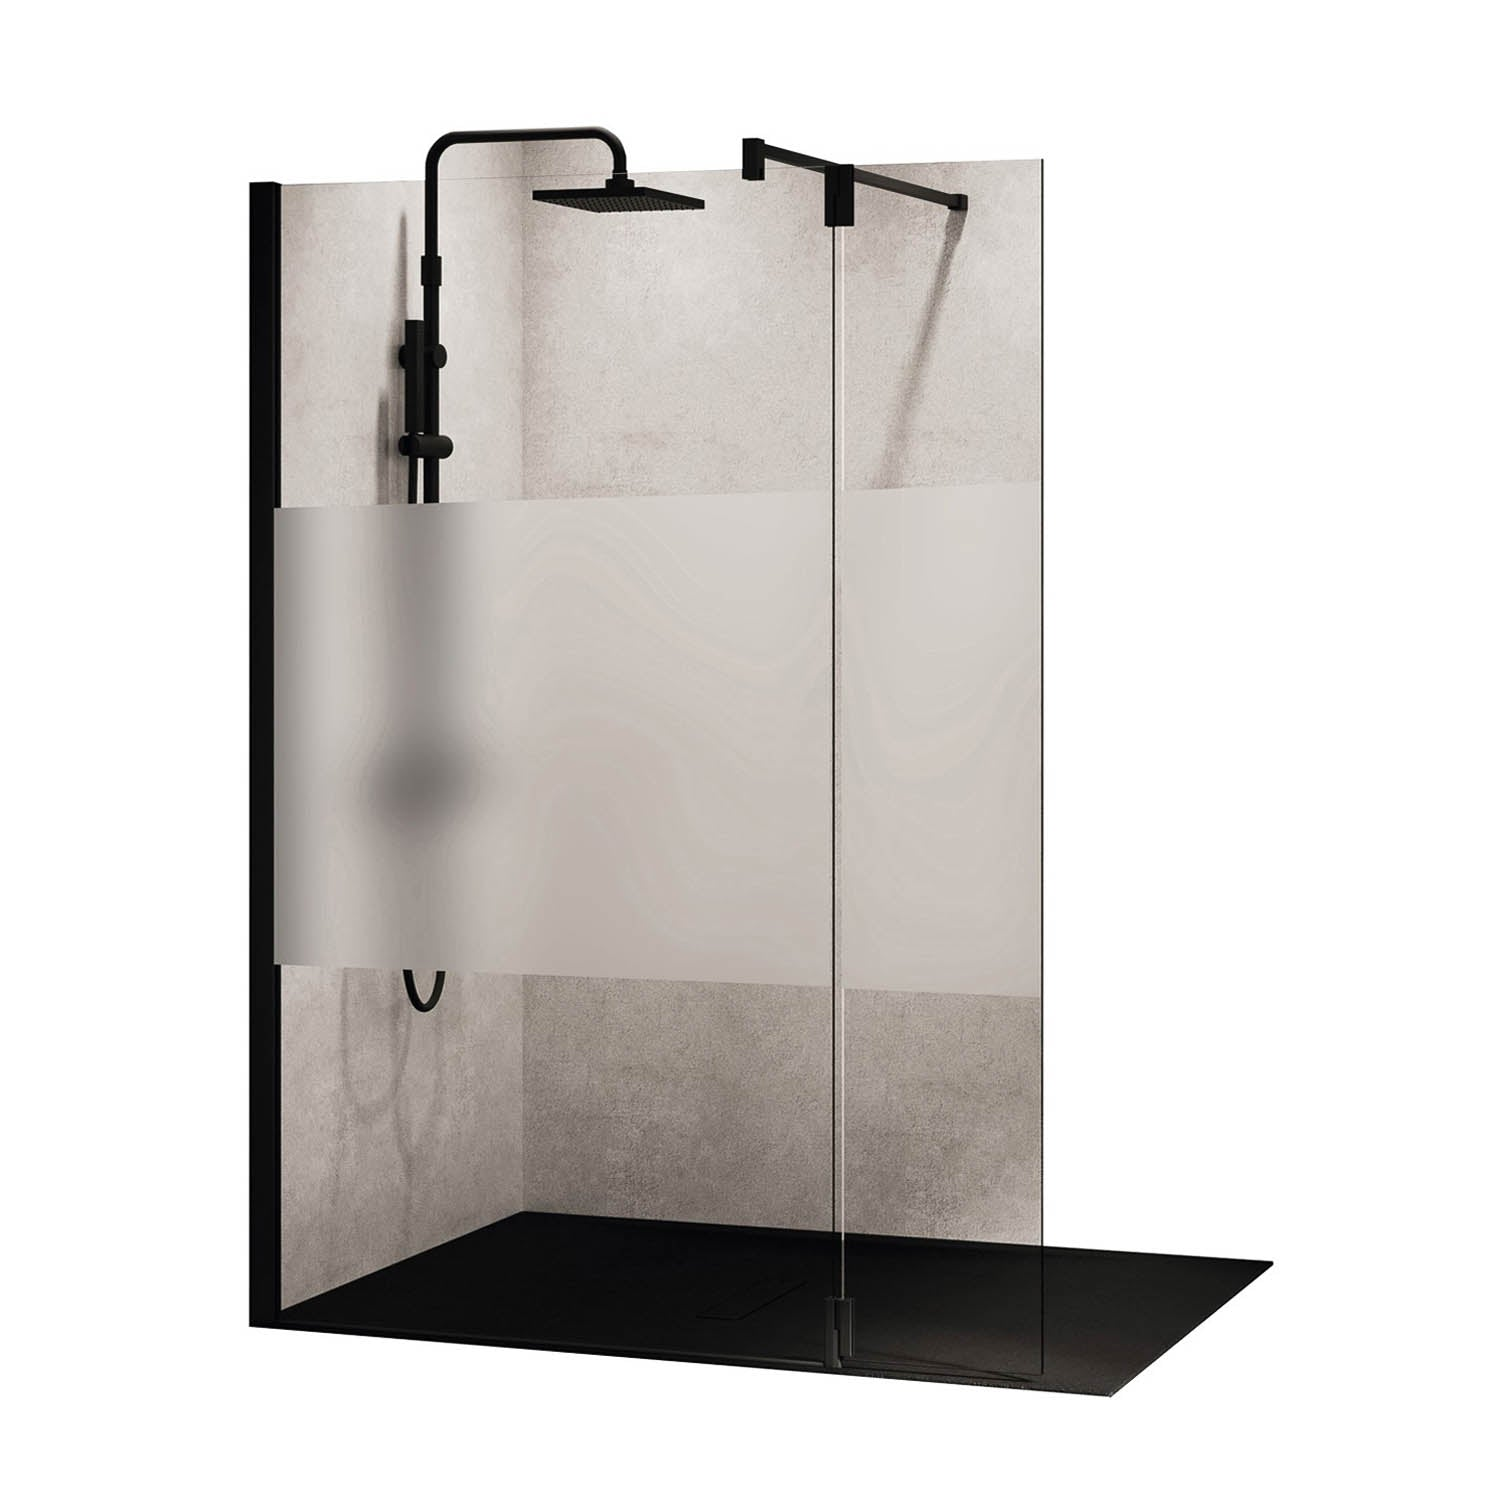 720-750mm Ergo Wet Room Screen Satin Band Glass with a matt black finish on a white background